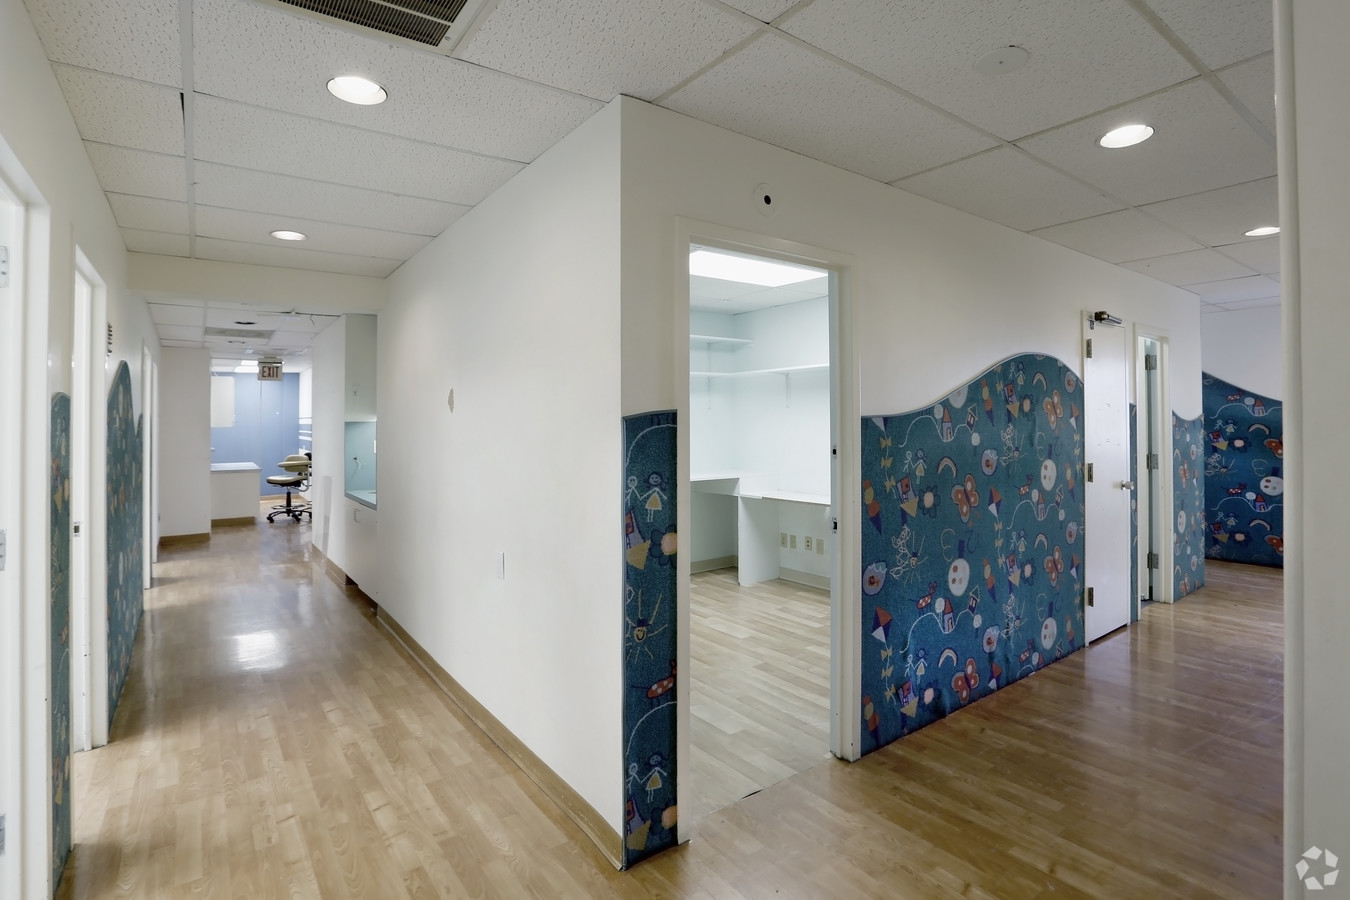 Medical Office Suite in Dallas - Suite 200 - Image 18 of 20